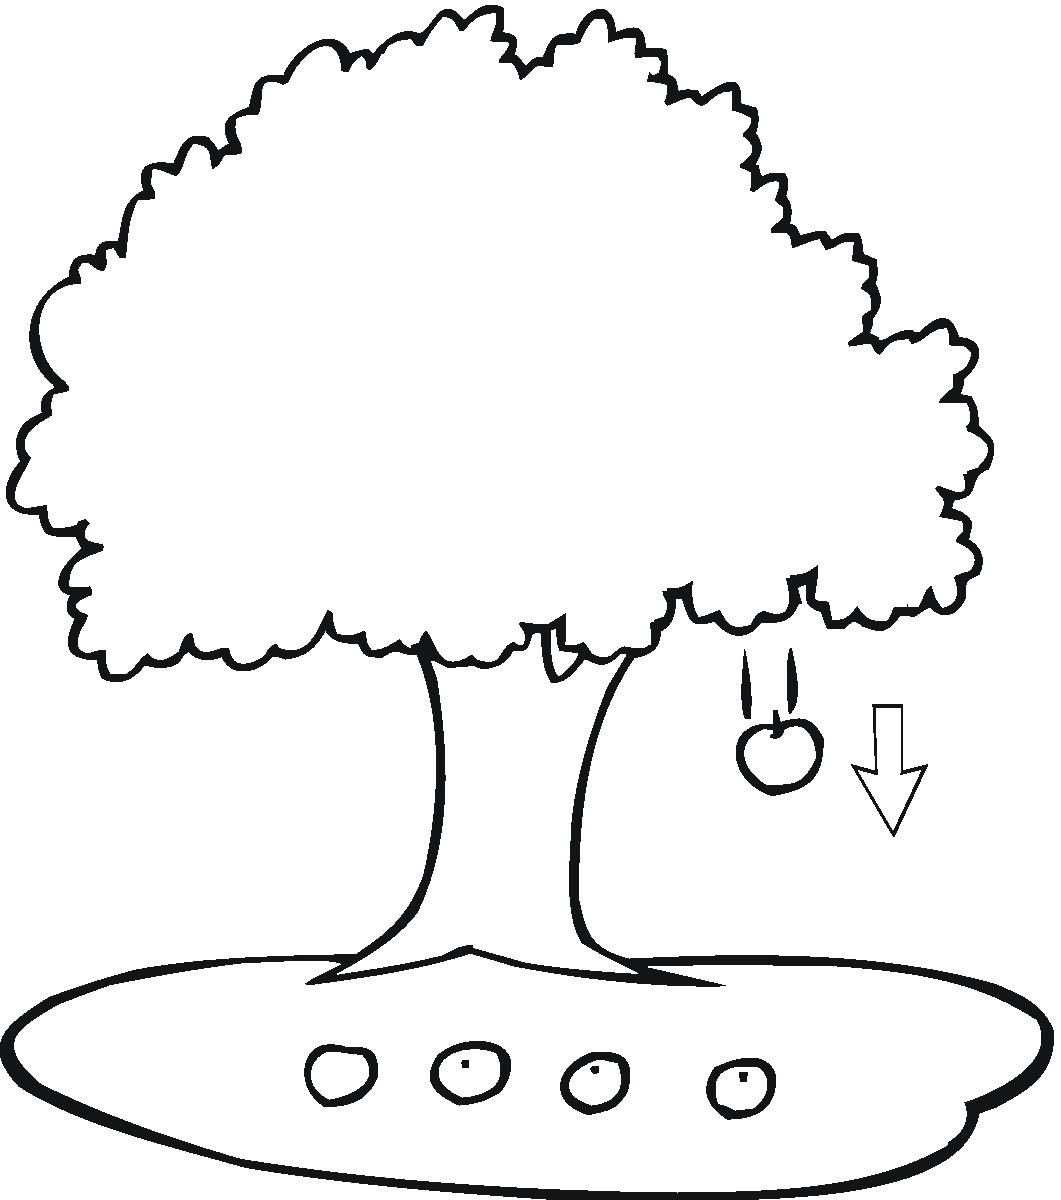 Free Printable Apple Coloring Pages For Kids Tree Coloring Page For Toddlers